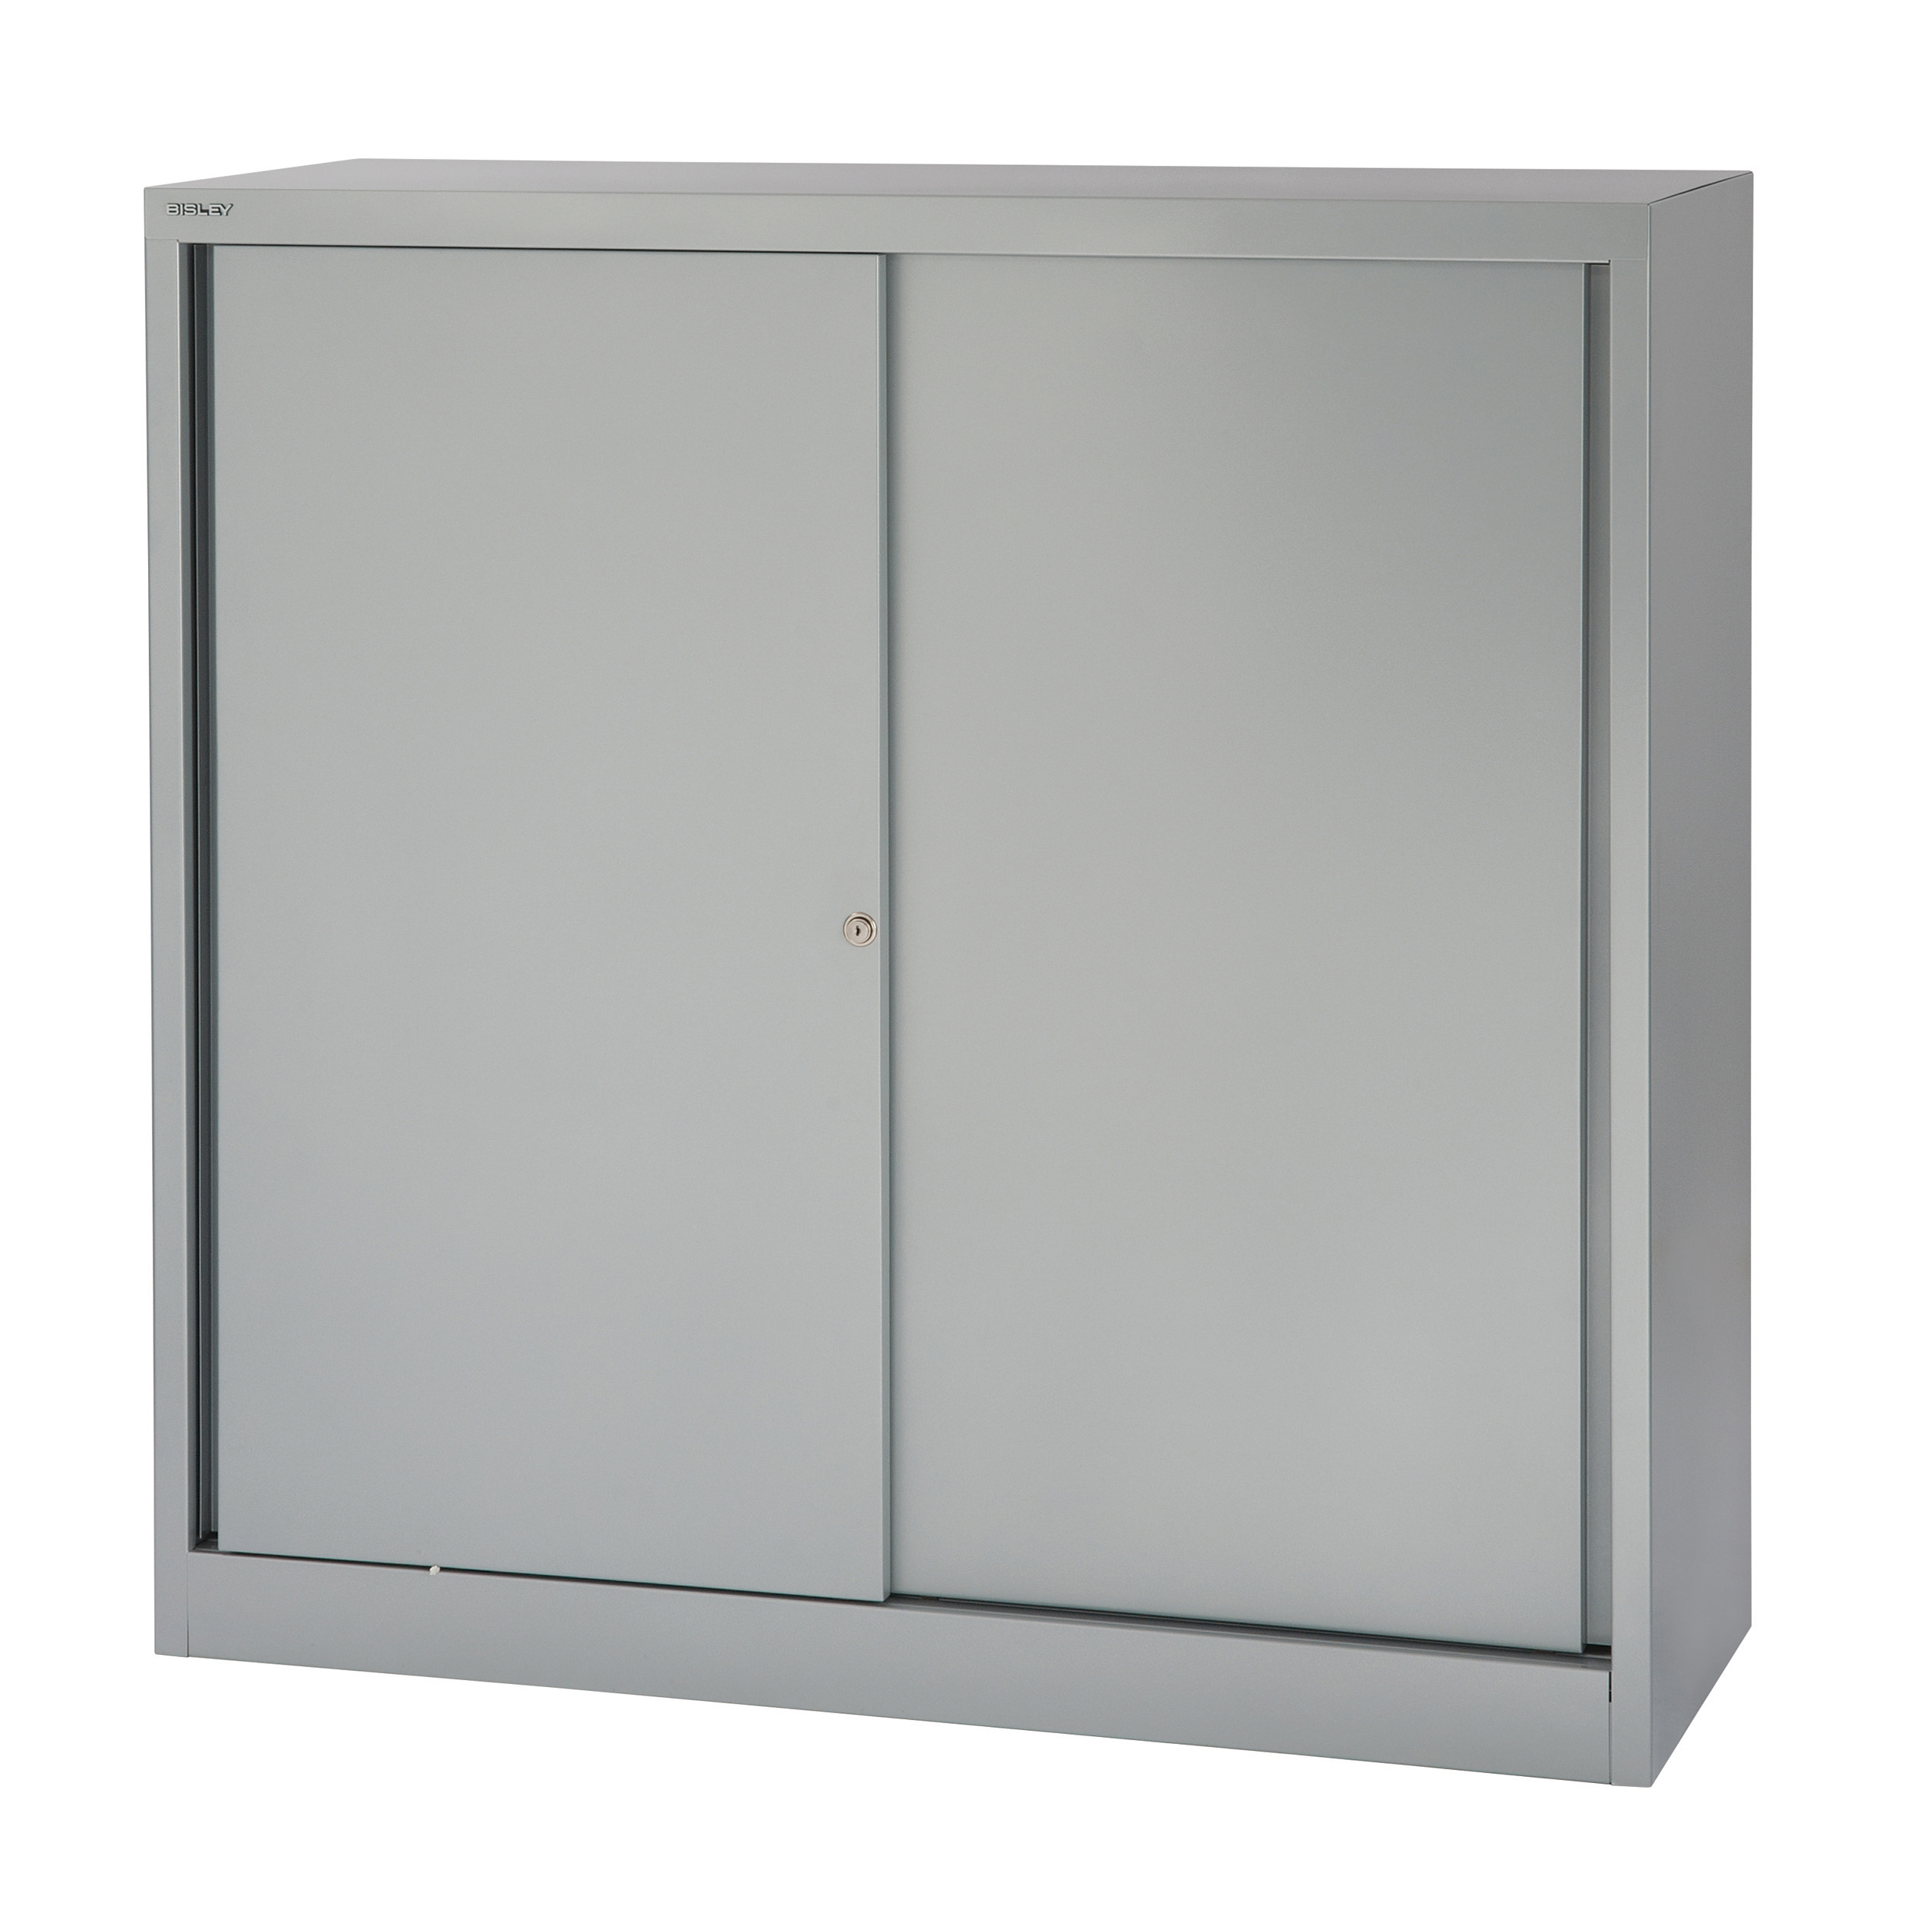 Bisley Sliding Door Cupboard inc 2 Shelves 1200x430x1181mm Silver Ref SD412/11/2S-arn Ref SD412/11/2S-arn